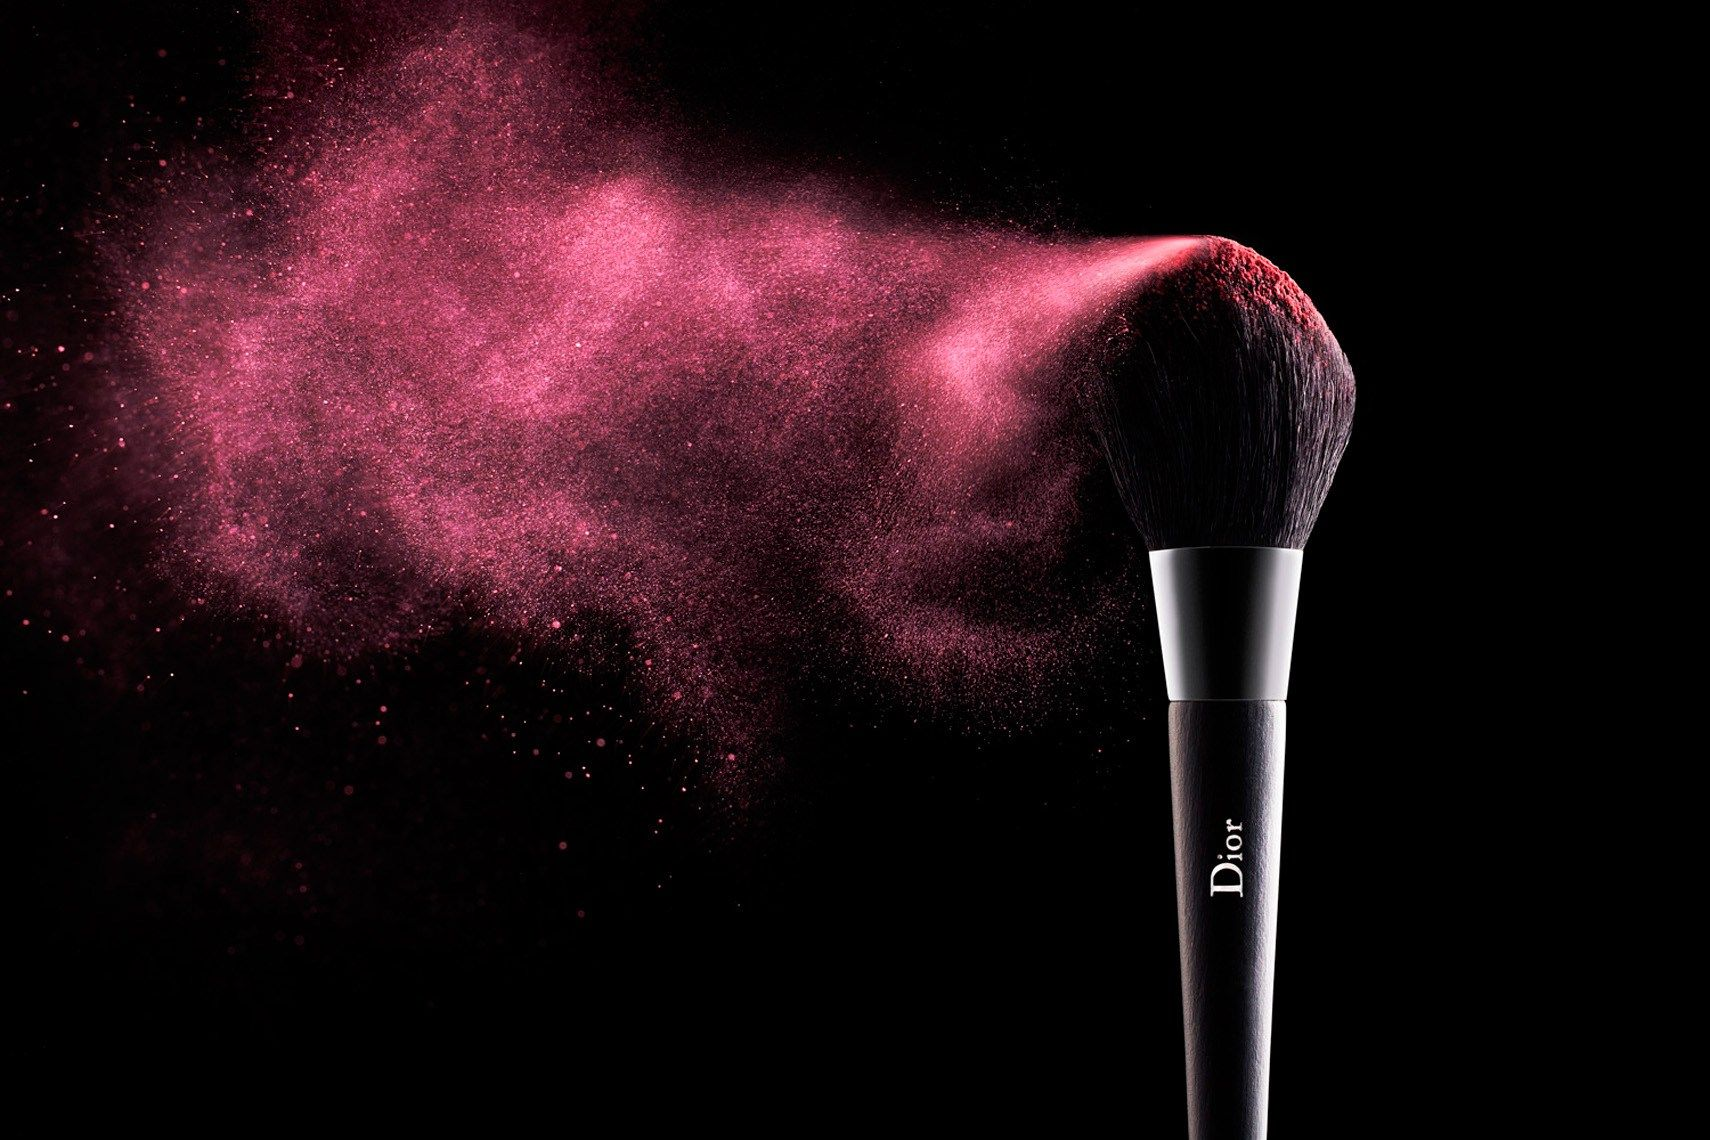 The basis for every good makeup look is makeup brushes